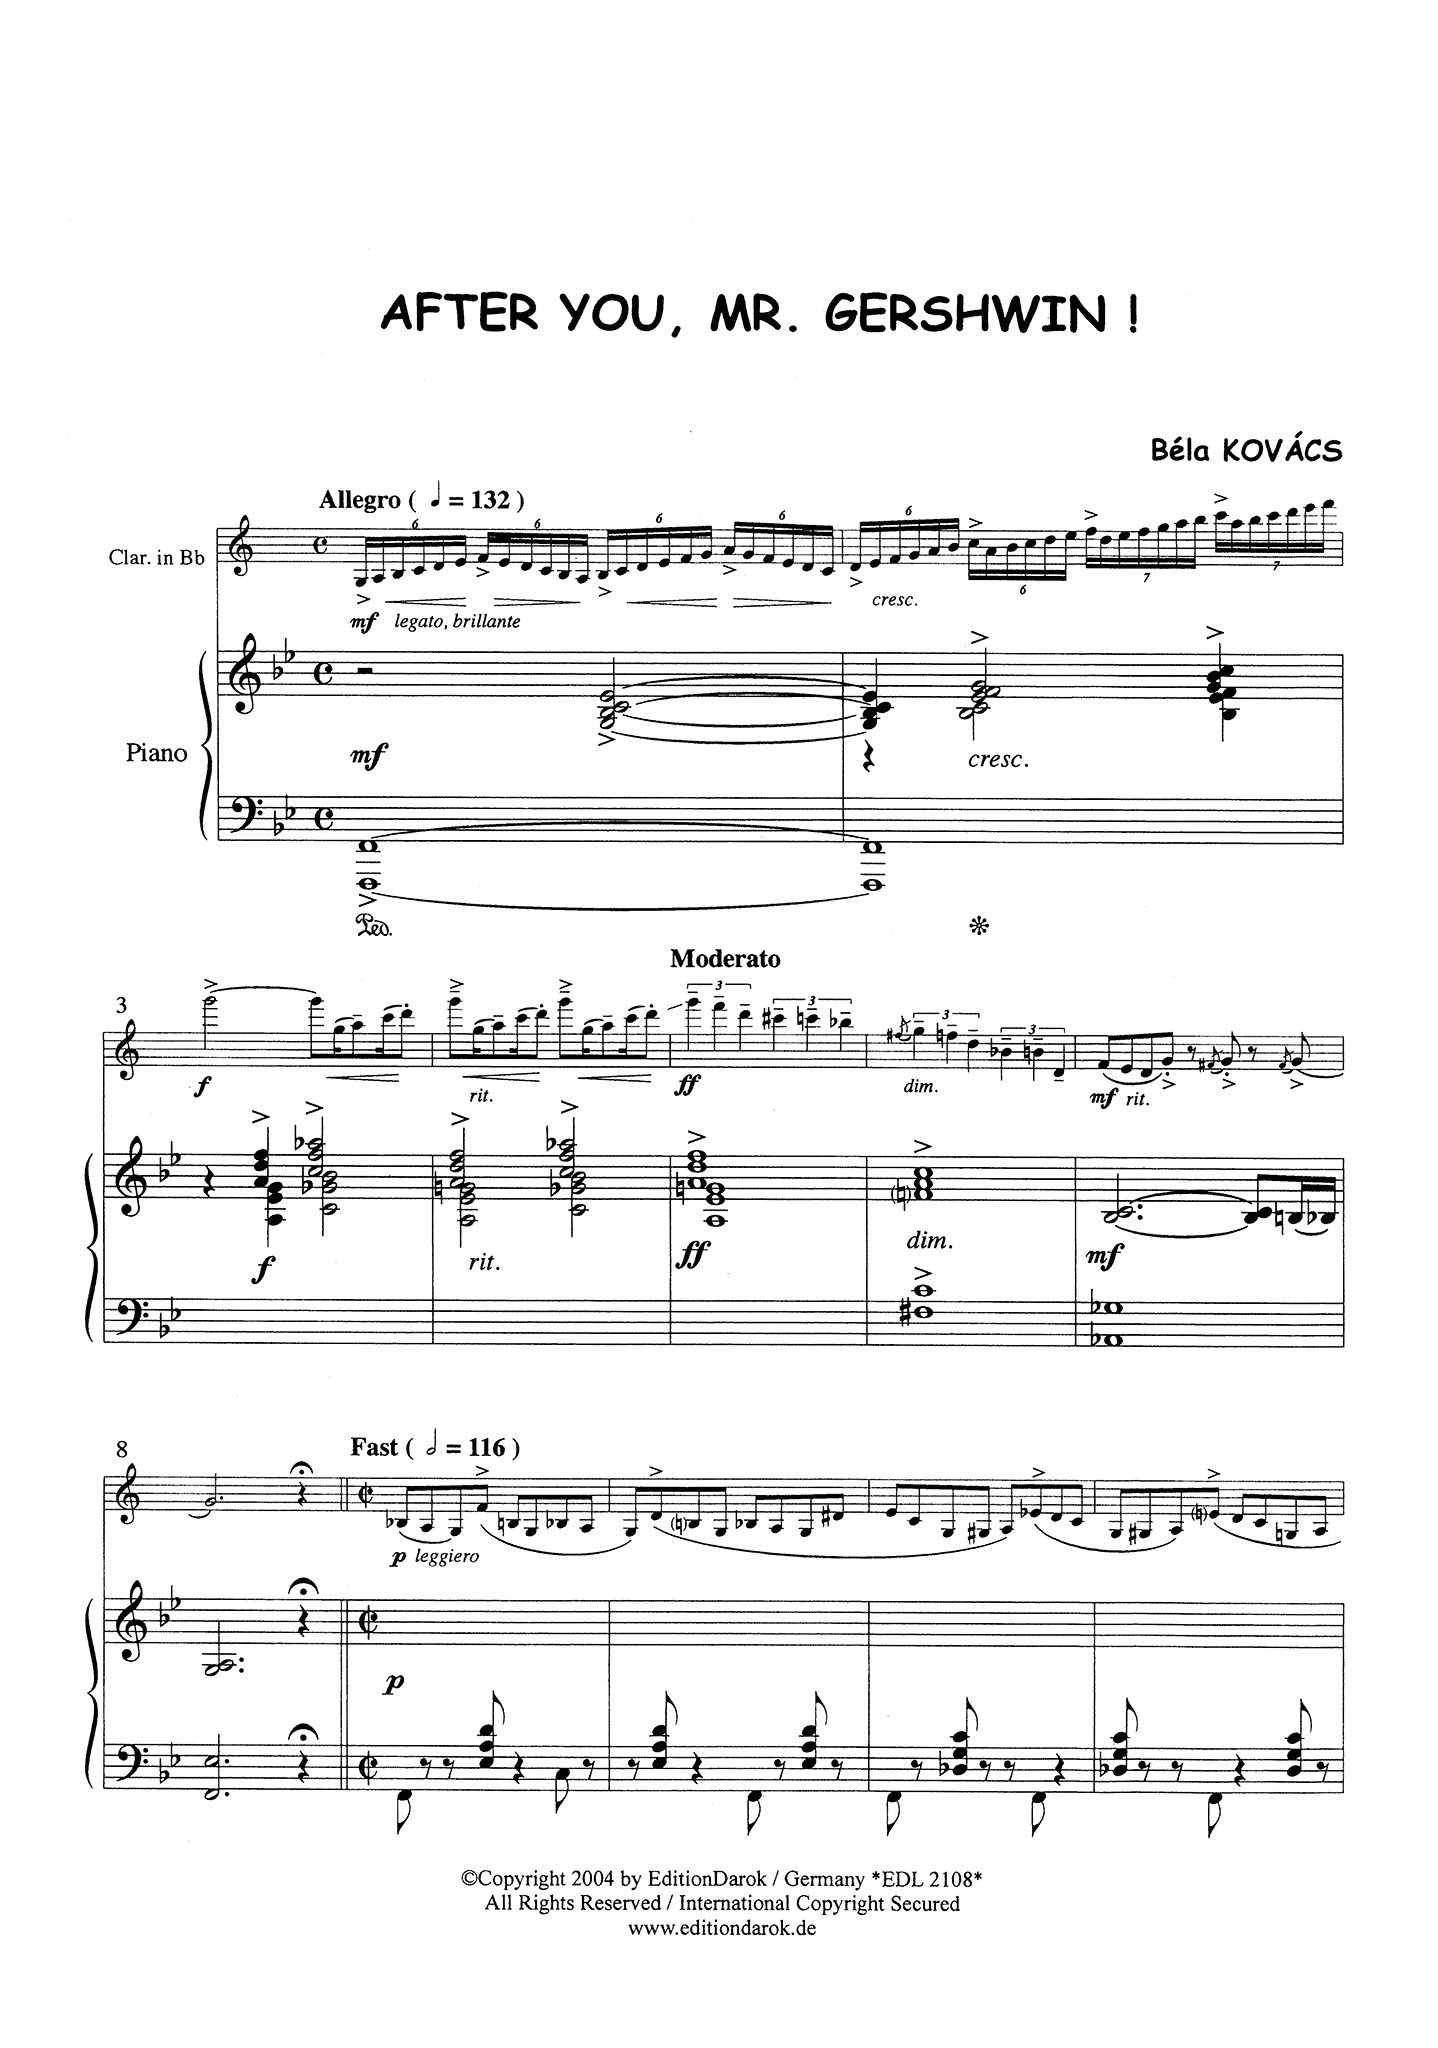 Kovács After You, Mr. Gershwin! Score